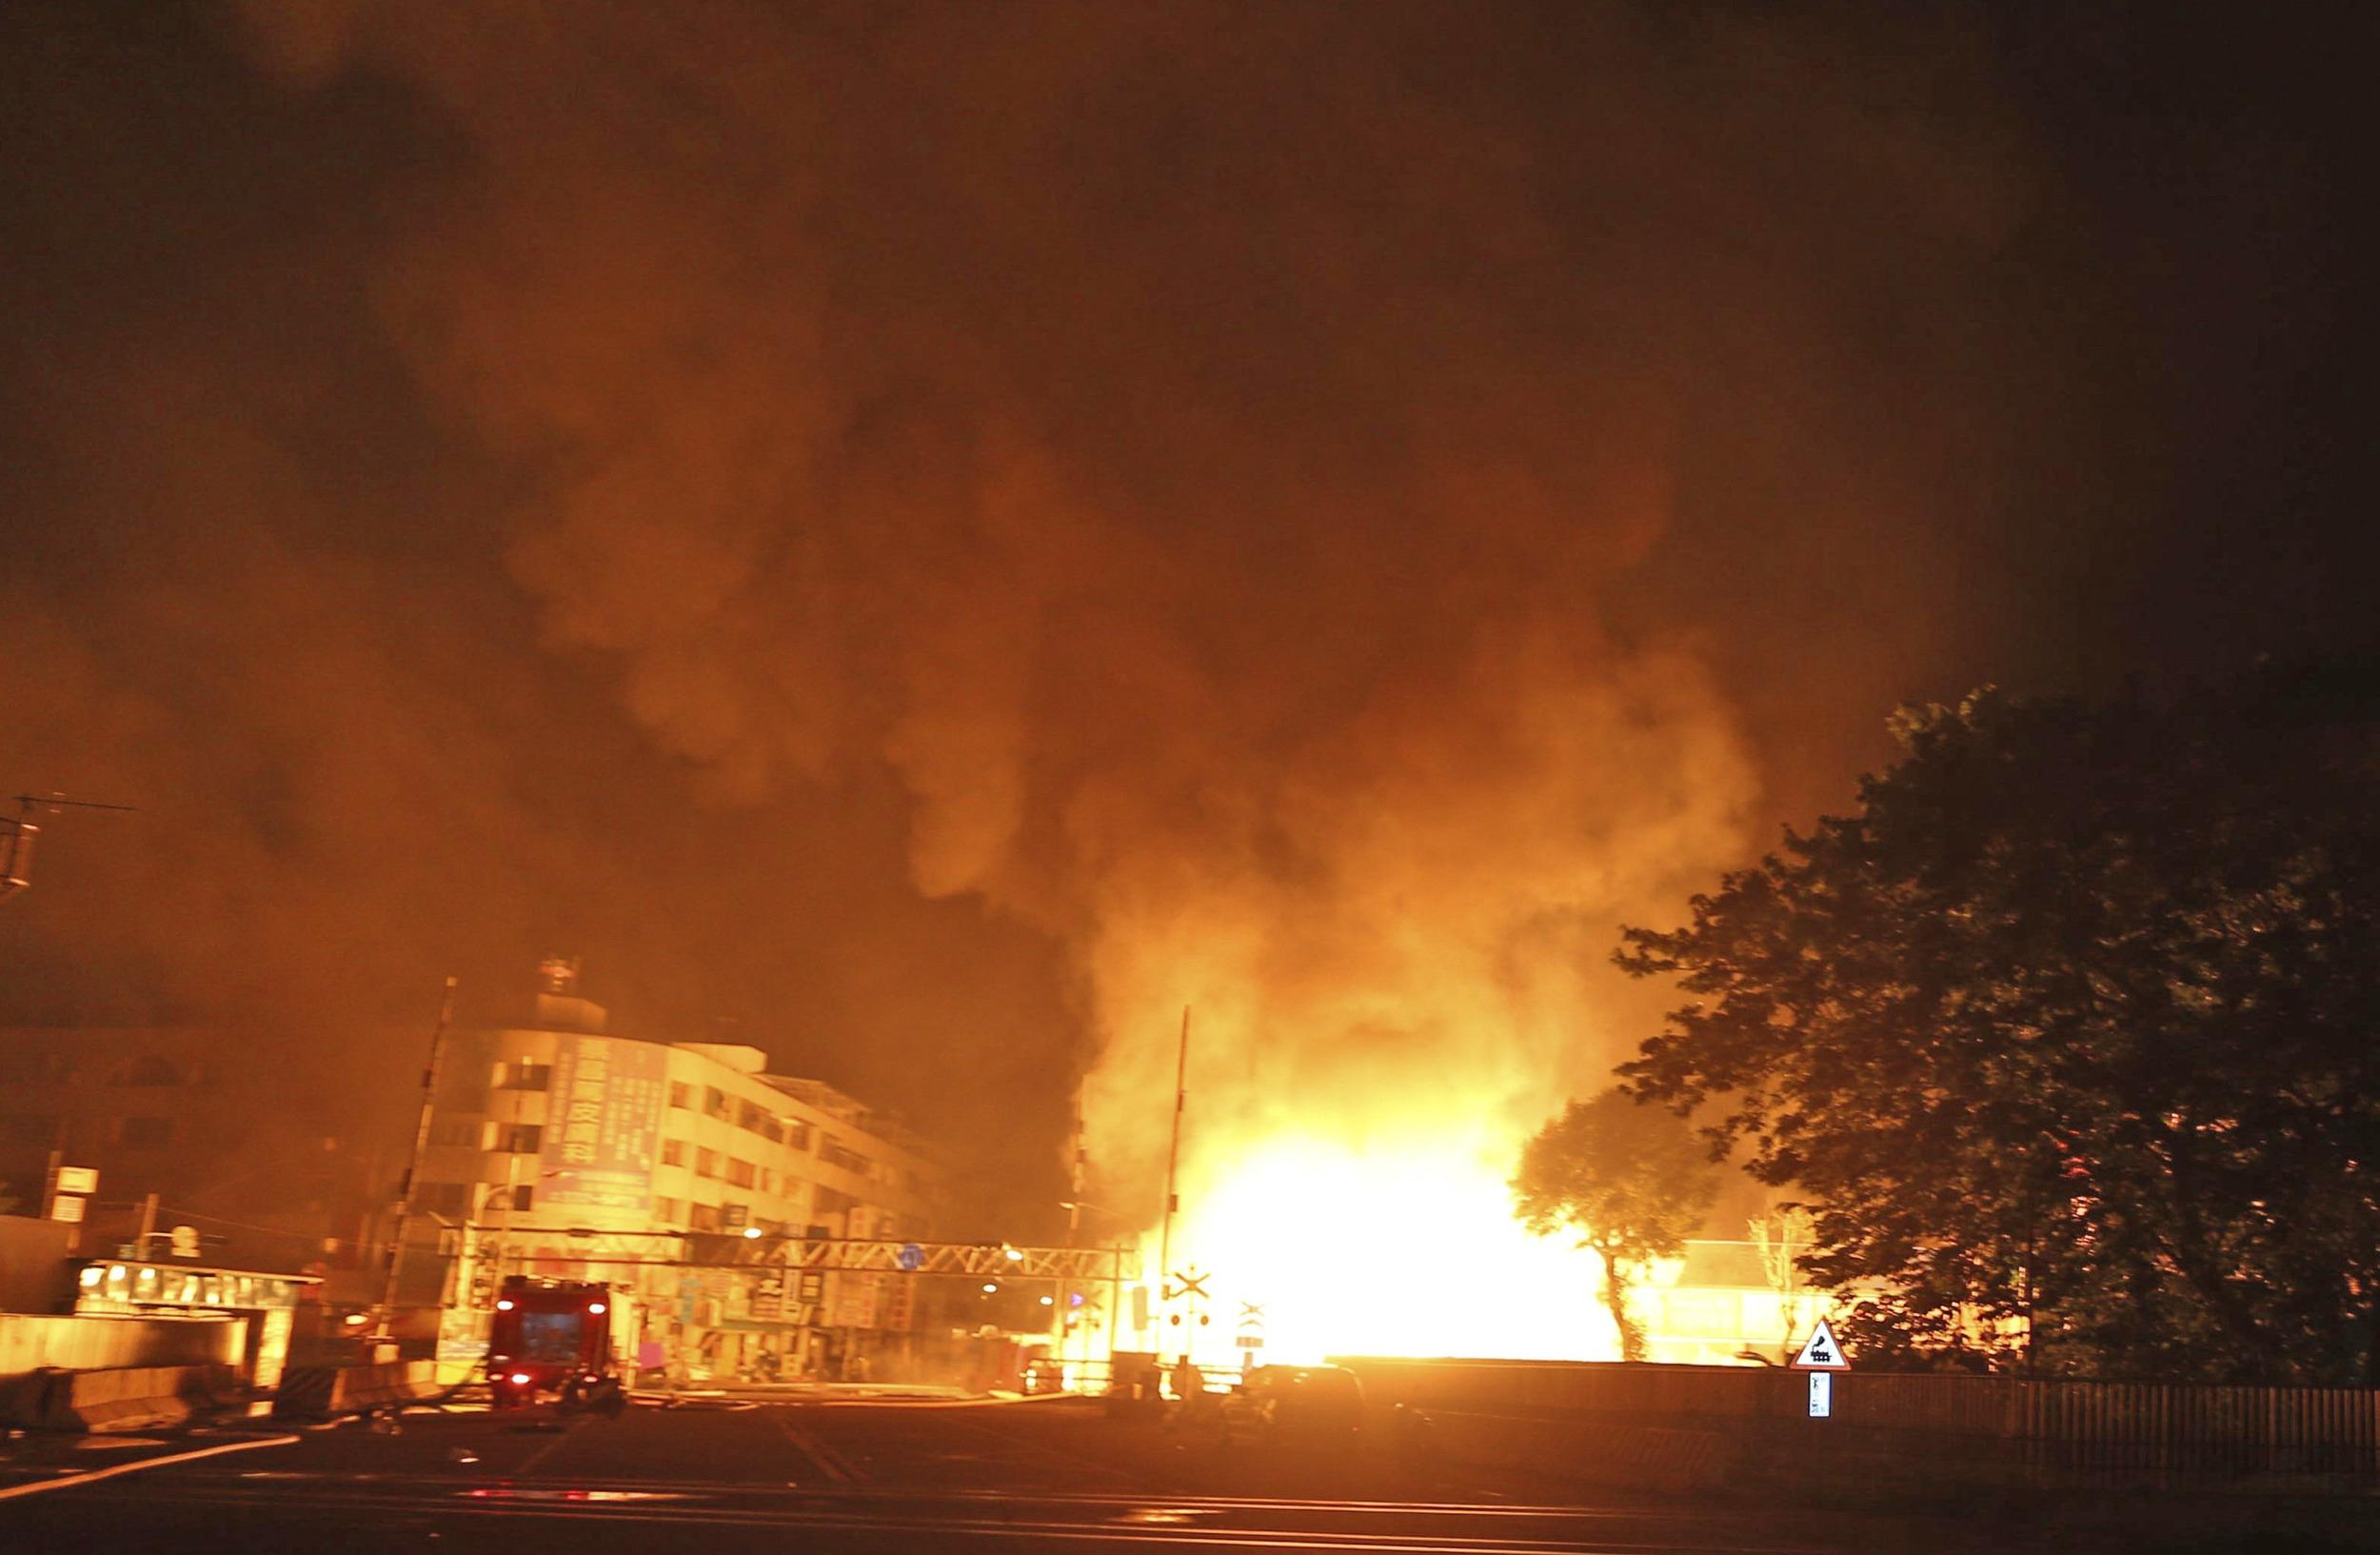 Image: Flames after explosion in Kaohsiung, Taiwan, on Friday